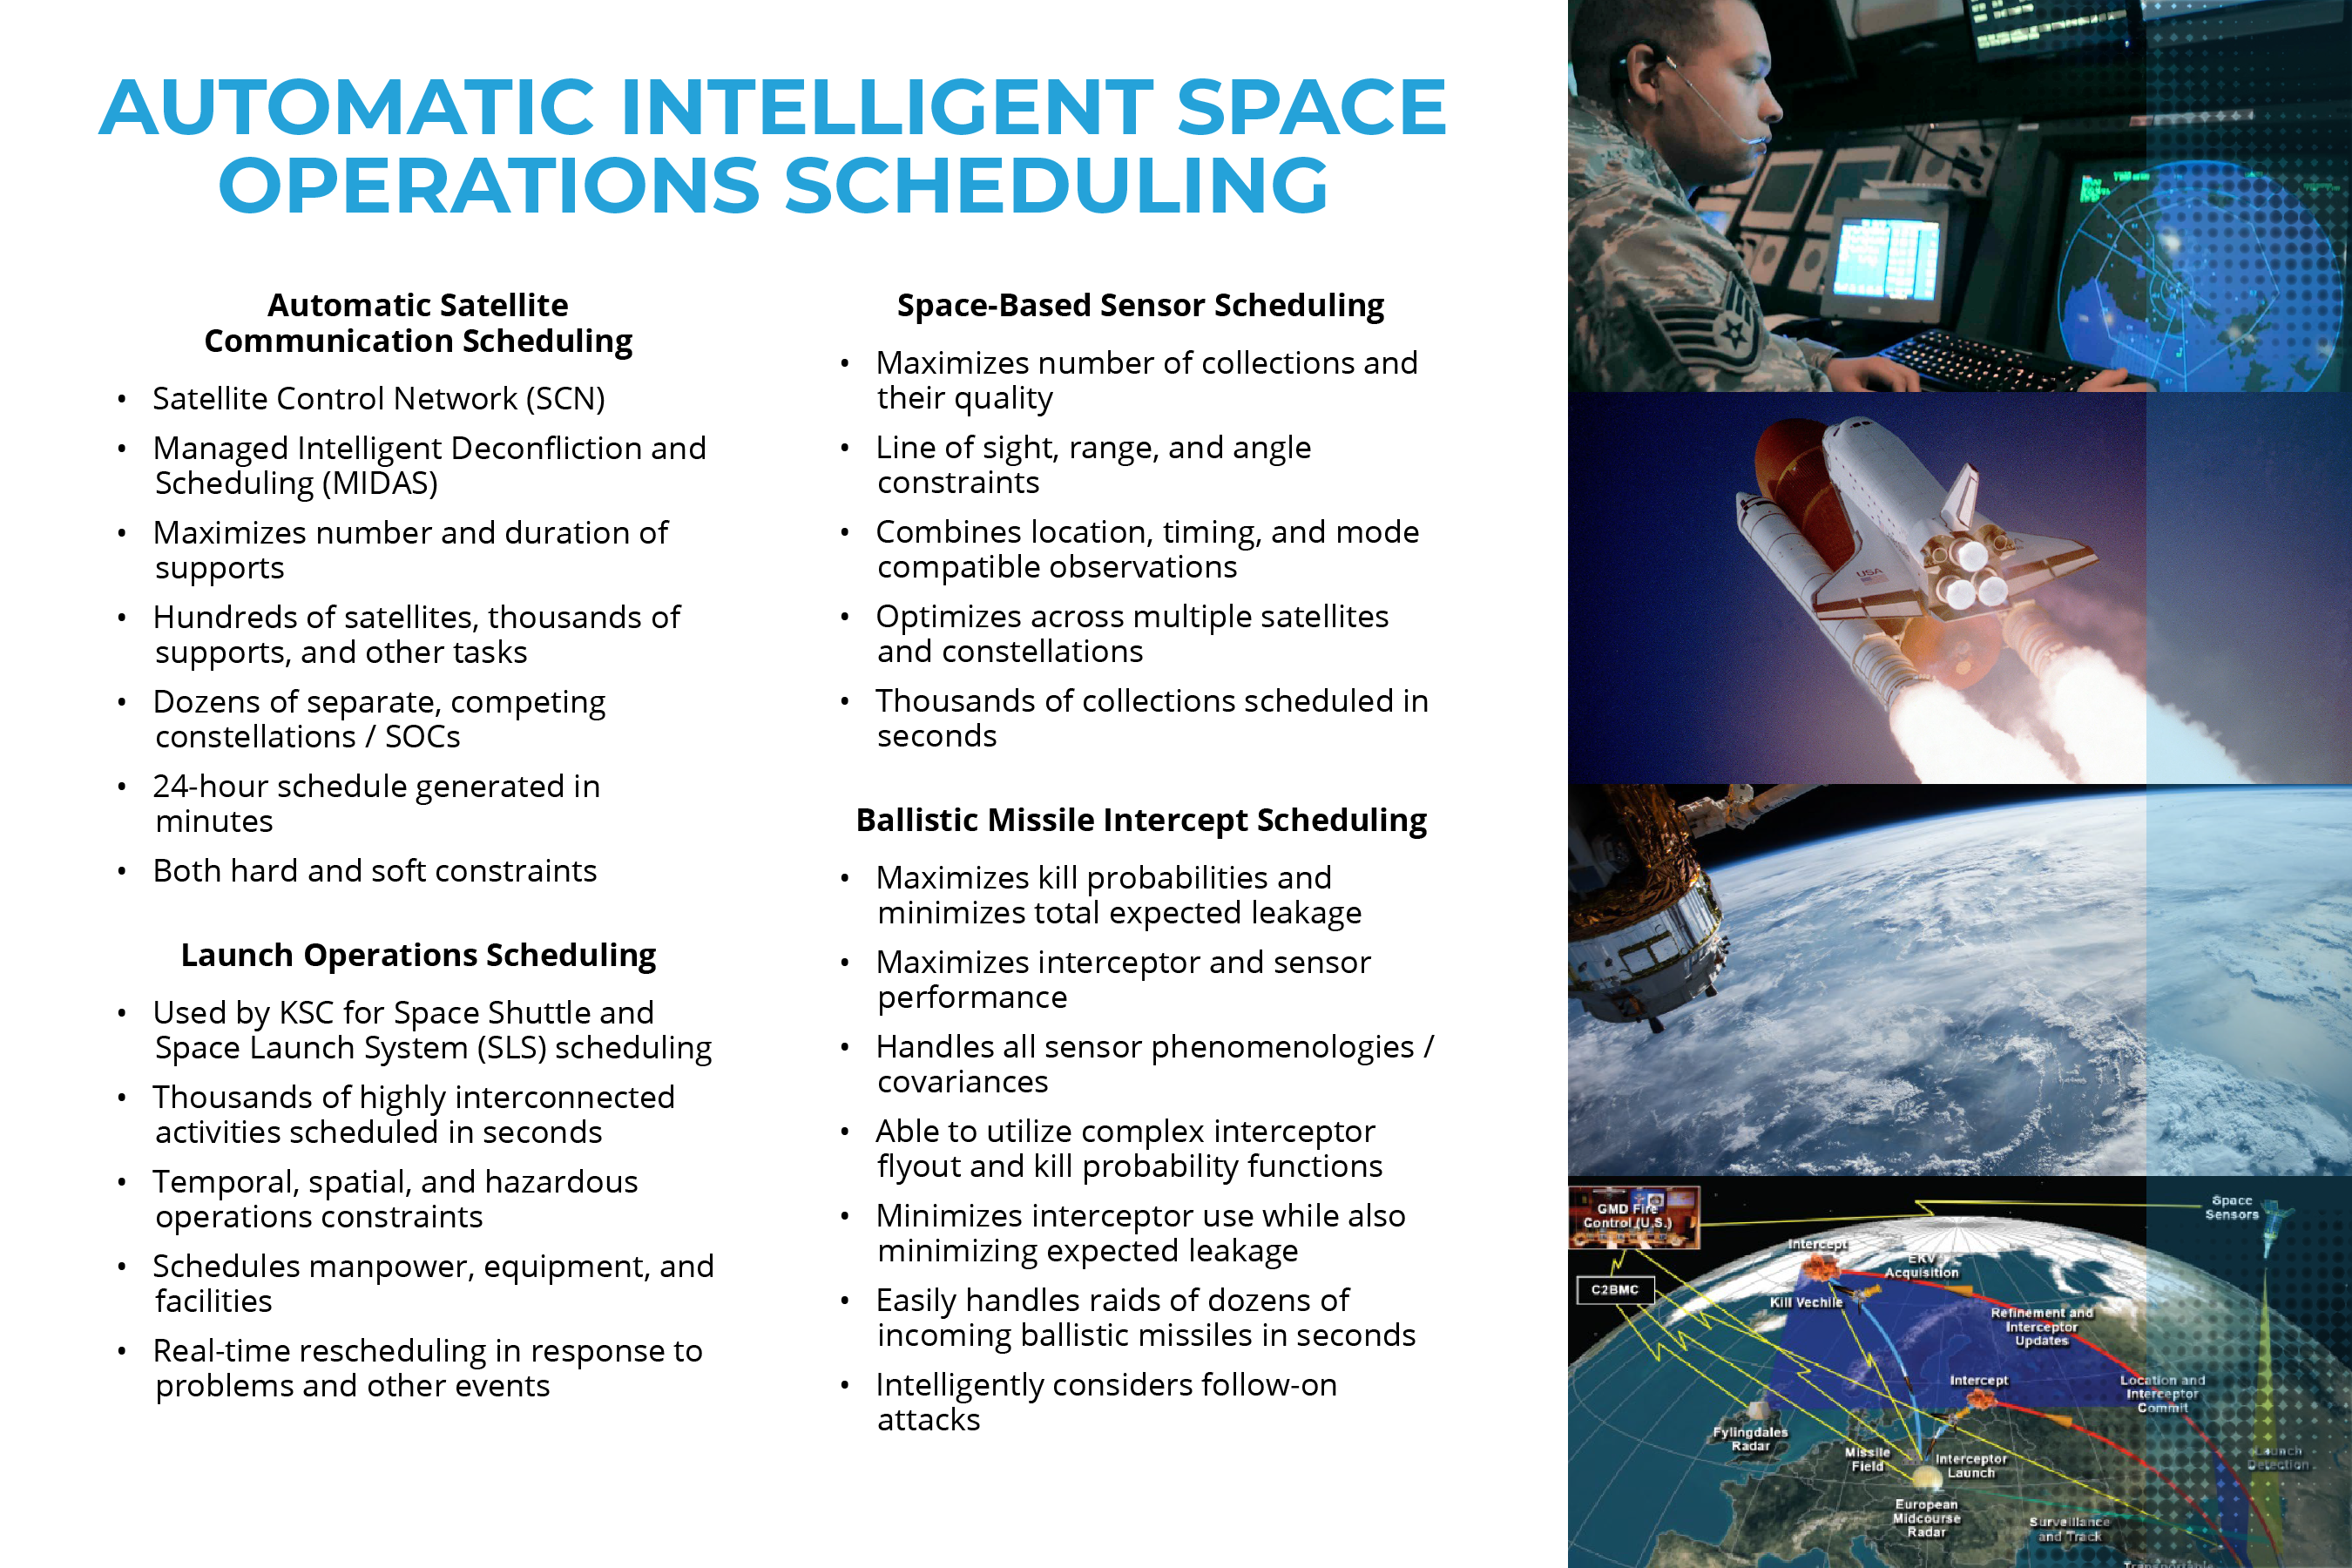 Automatic-Intelligent-Space-Operations-Scheduling-2021